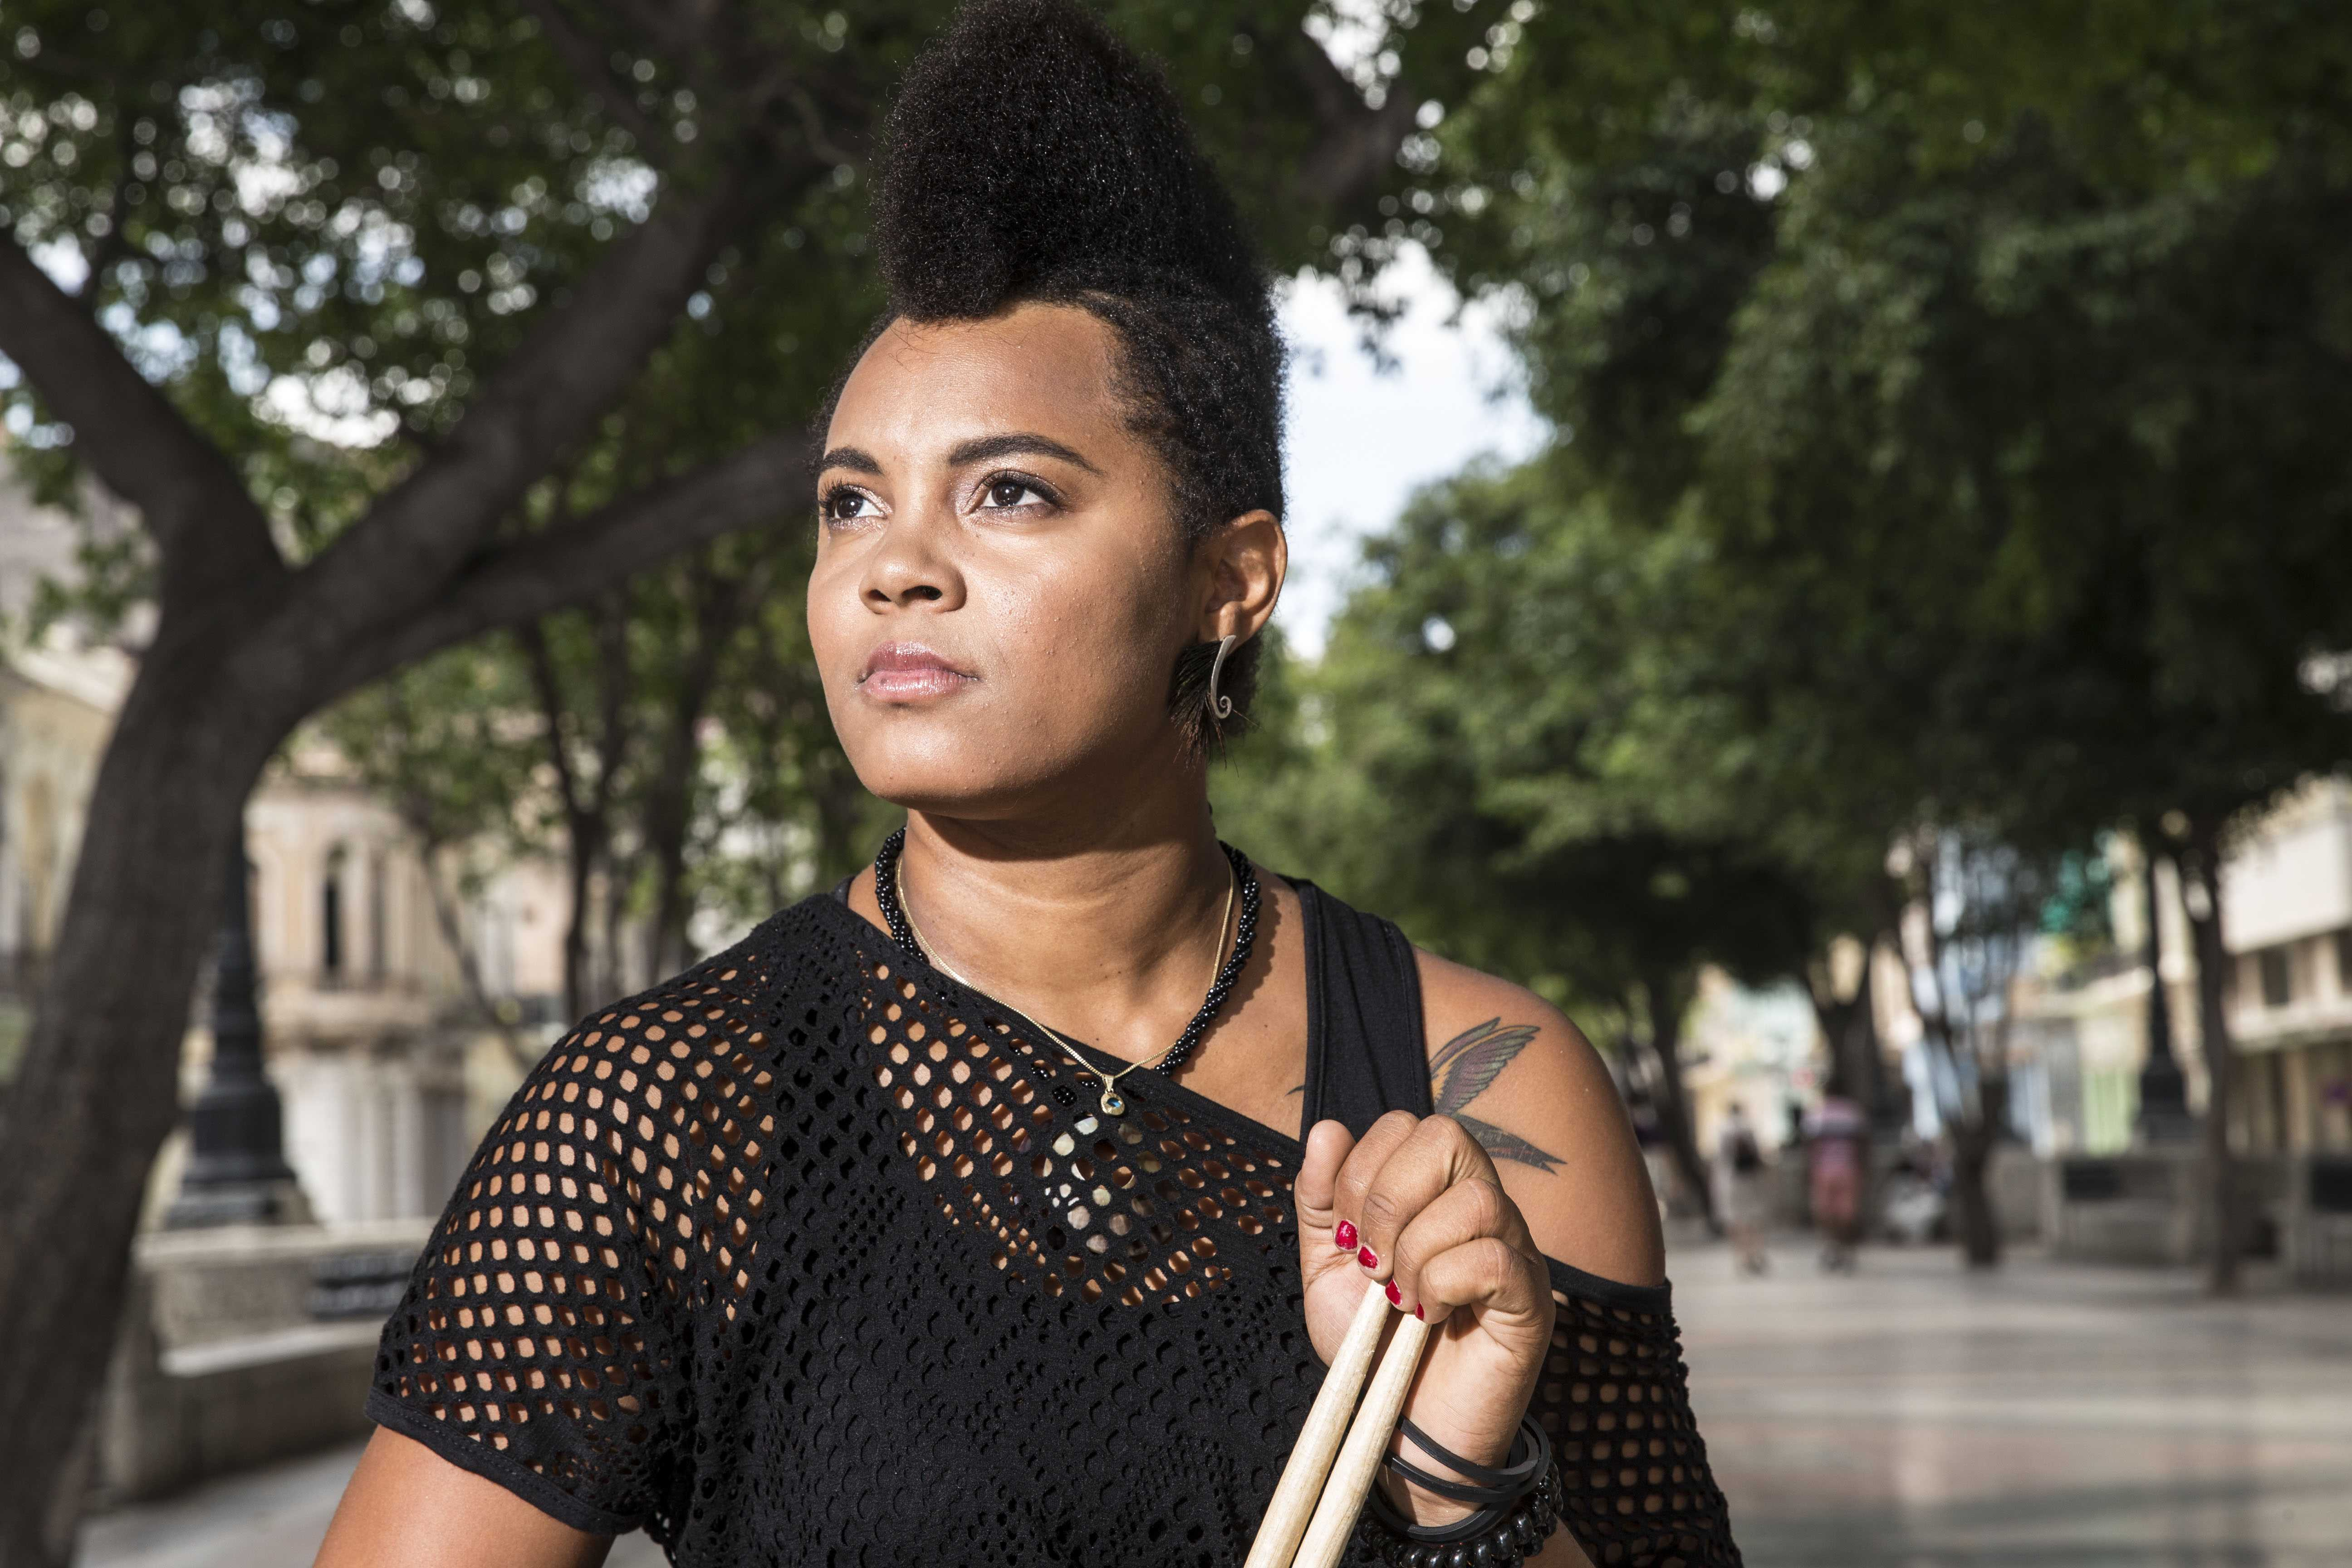 Yissy Garcia, born in the infamous town of Cayo Hueso, is a drummer of her group bandancha. Photo Credit: Courtesy of Yissy Garcia